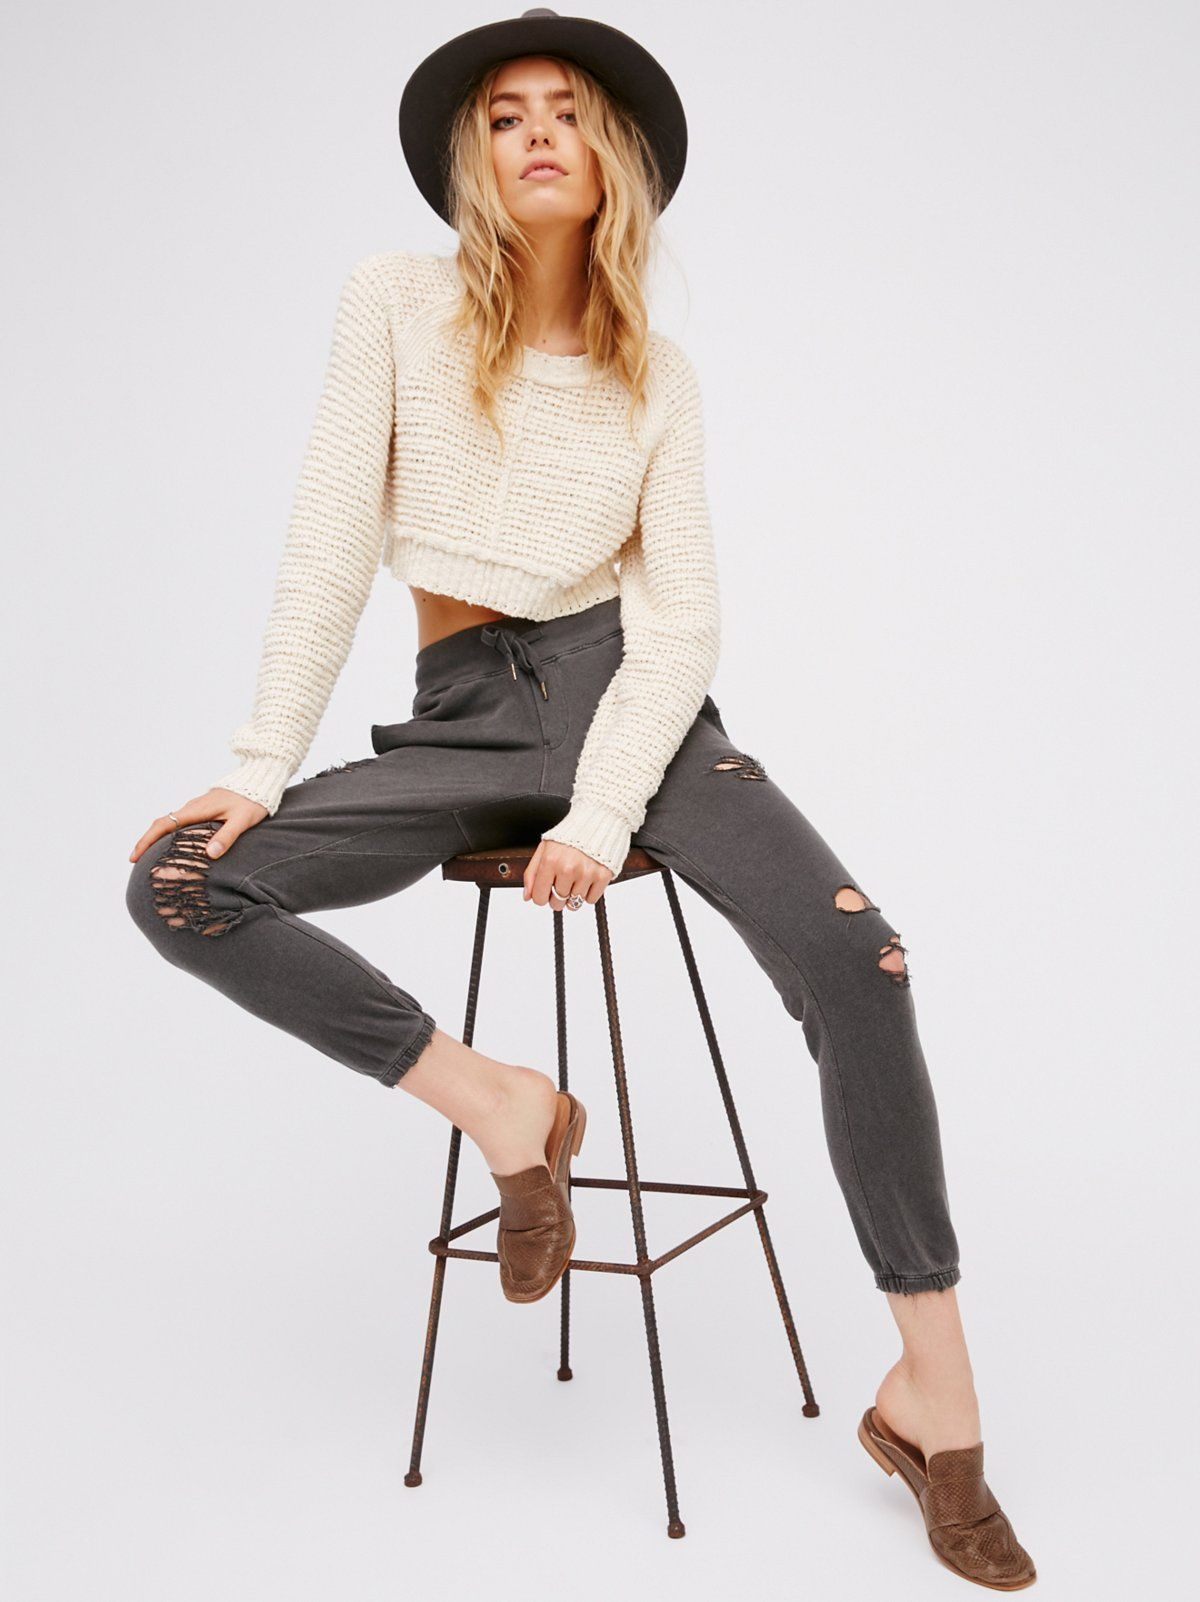 Sayde Jogger | Made in LA, these super comfy joggers feature an easy drawstring closure at the waist and effortless elastic at the ankle cuffs. Distressing throughout for a cool girl edge. Hidden side pockets and exposed back pocket.